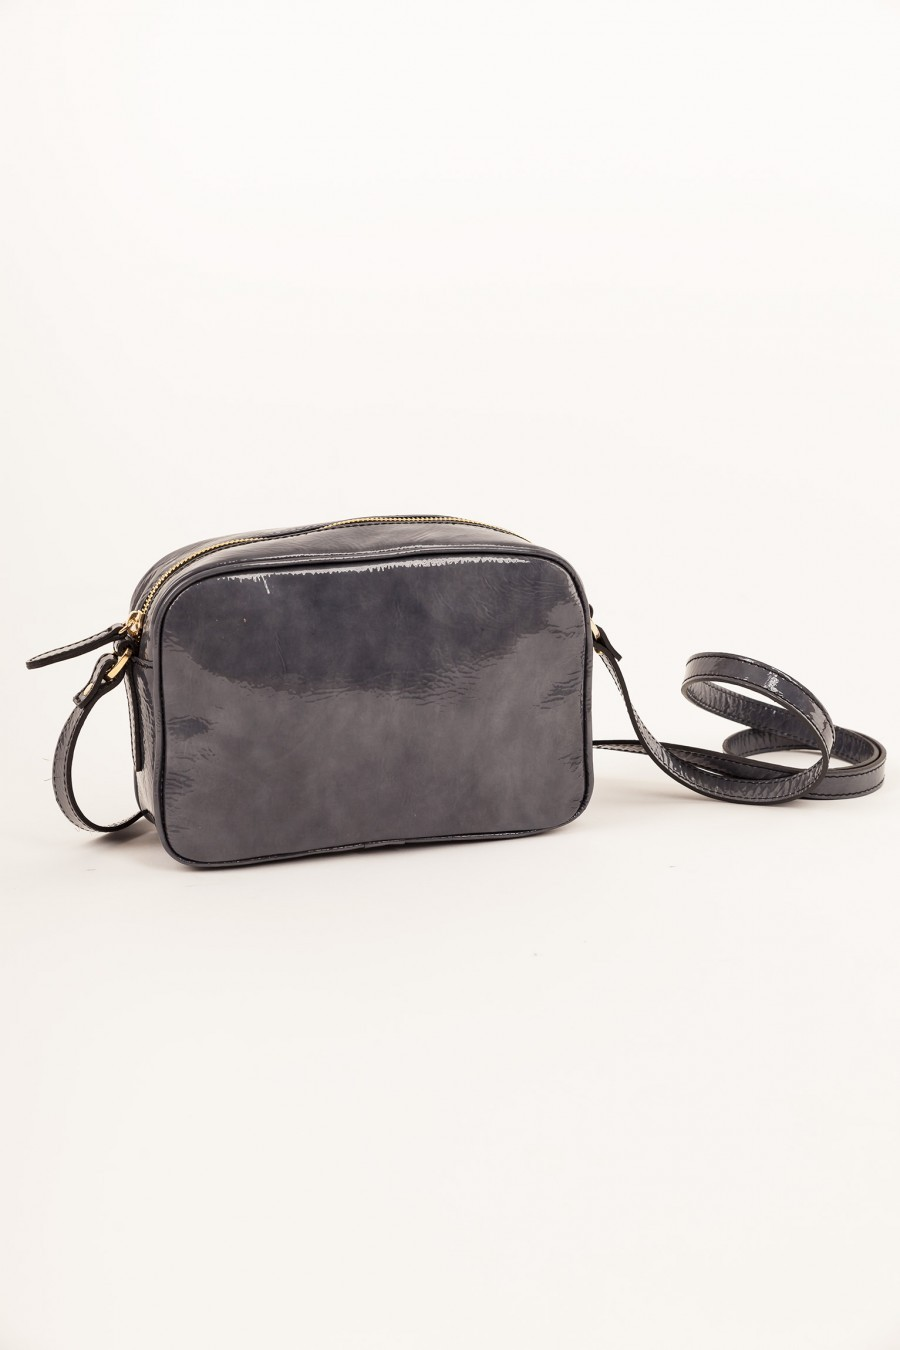 Shoulder bag in patent leather grey